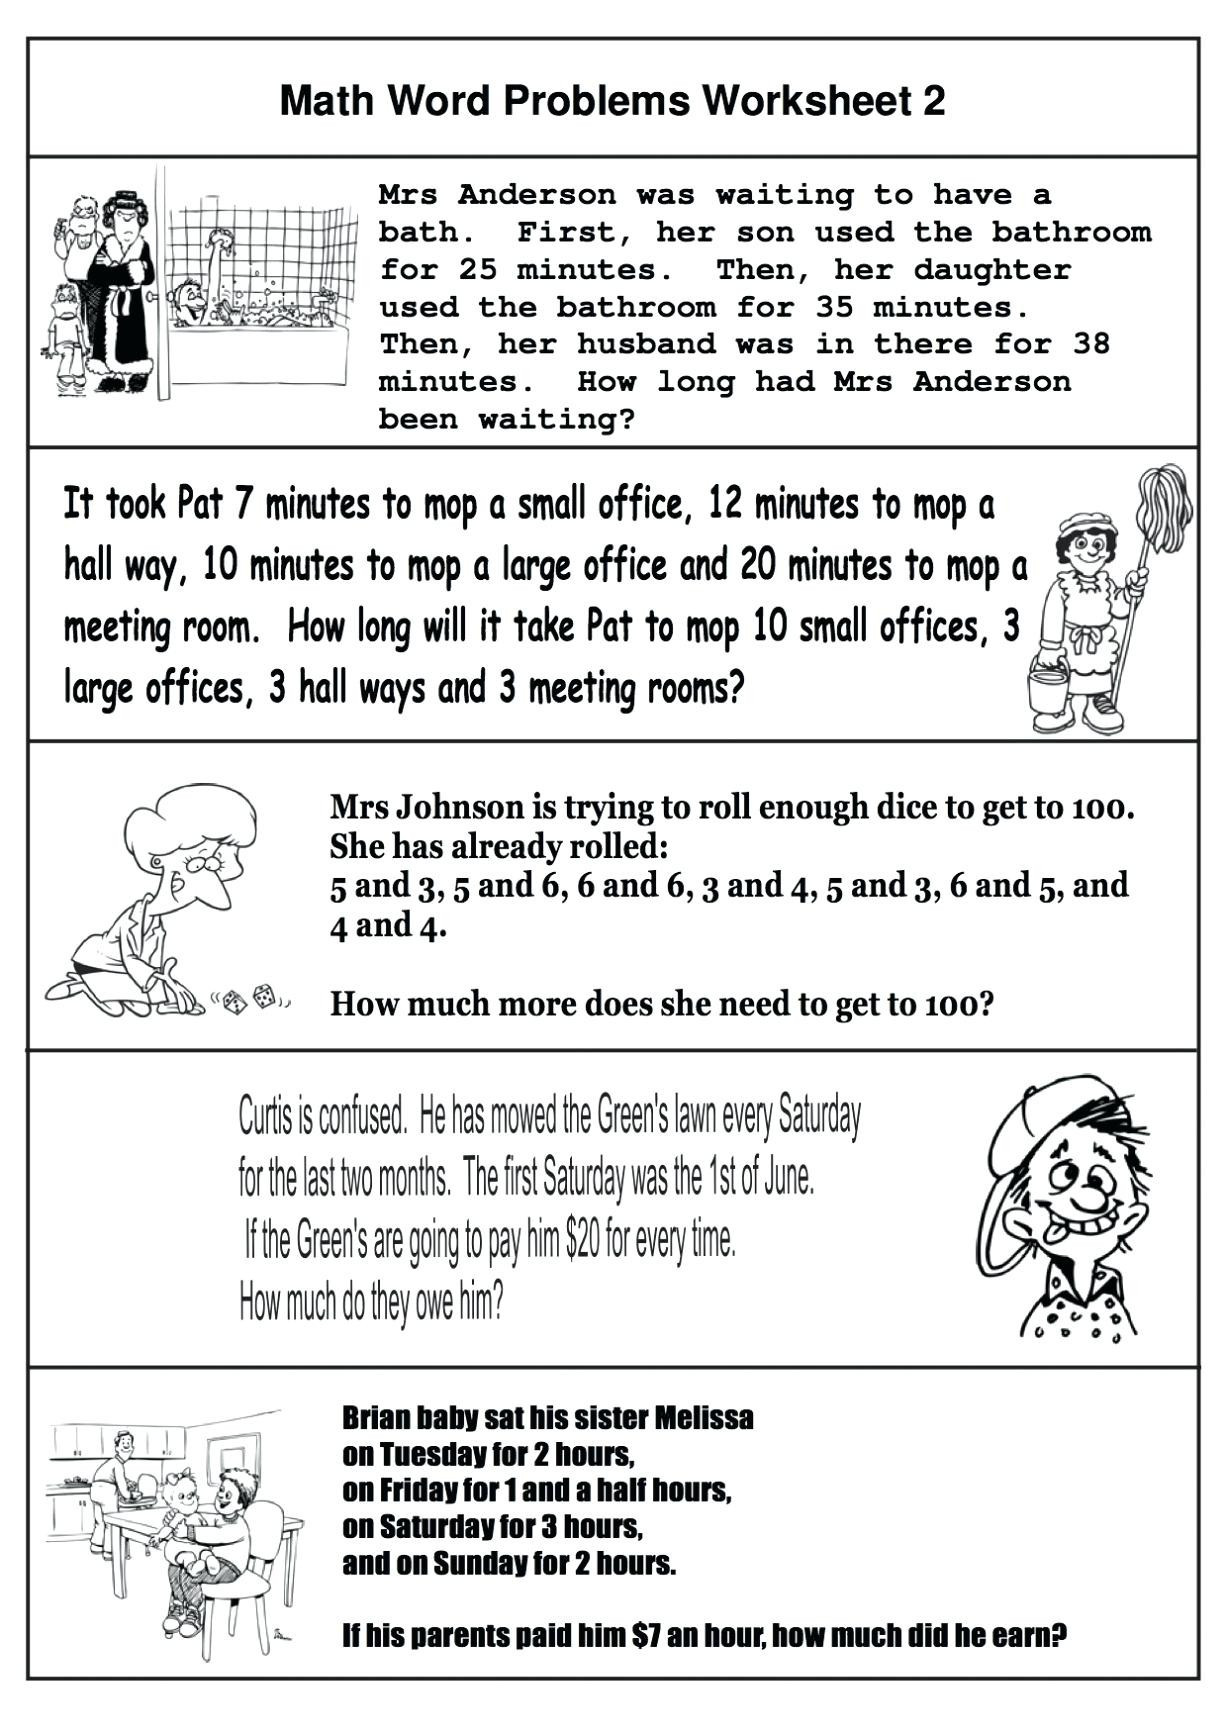 hight resolution of 5 Free Math Worksheets Fourth Grade 4 Addition Adding 3 Digit and 1 Digit  Numbers - apocalomegaproductions.com